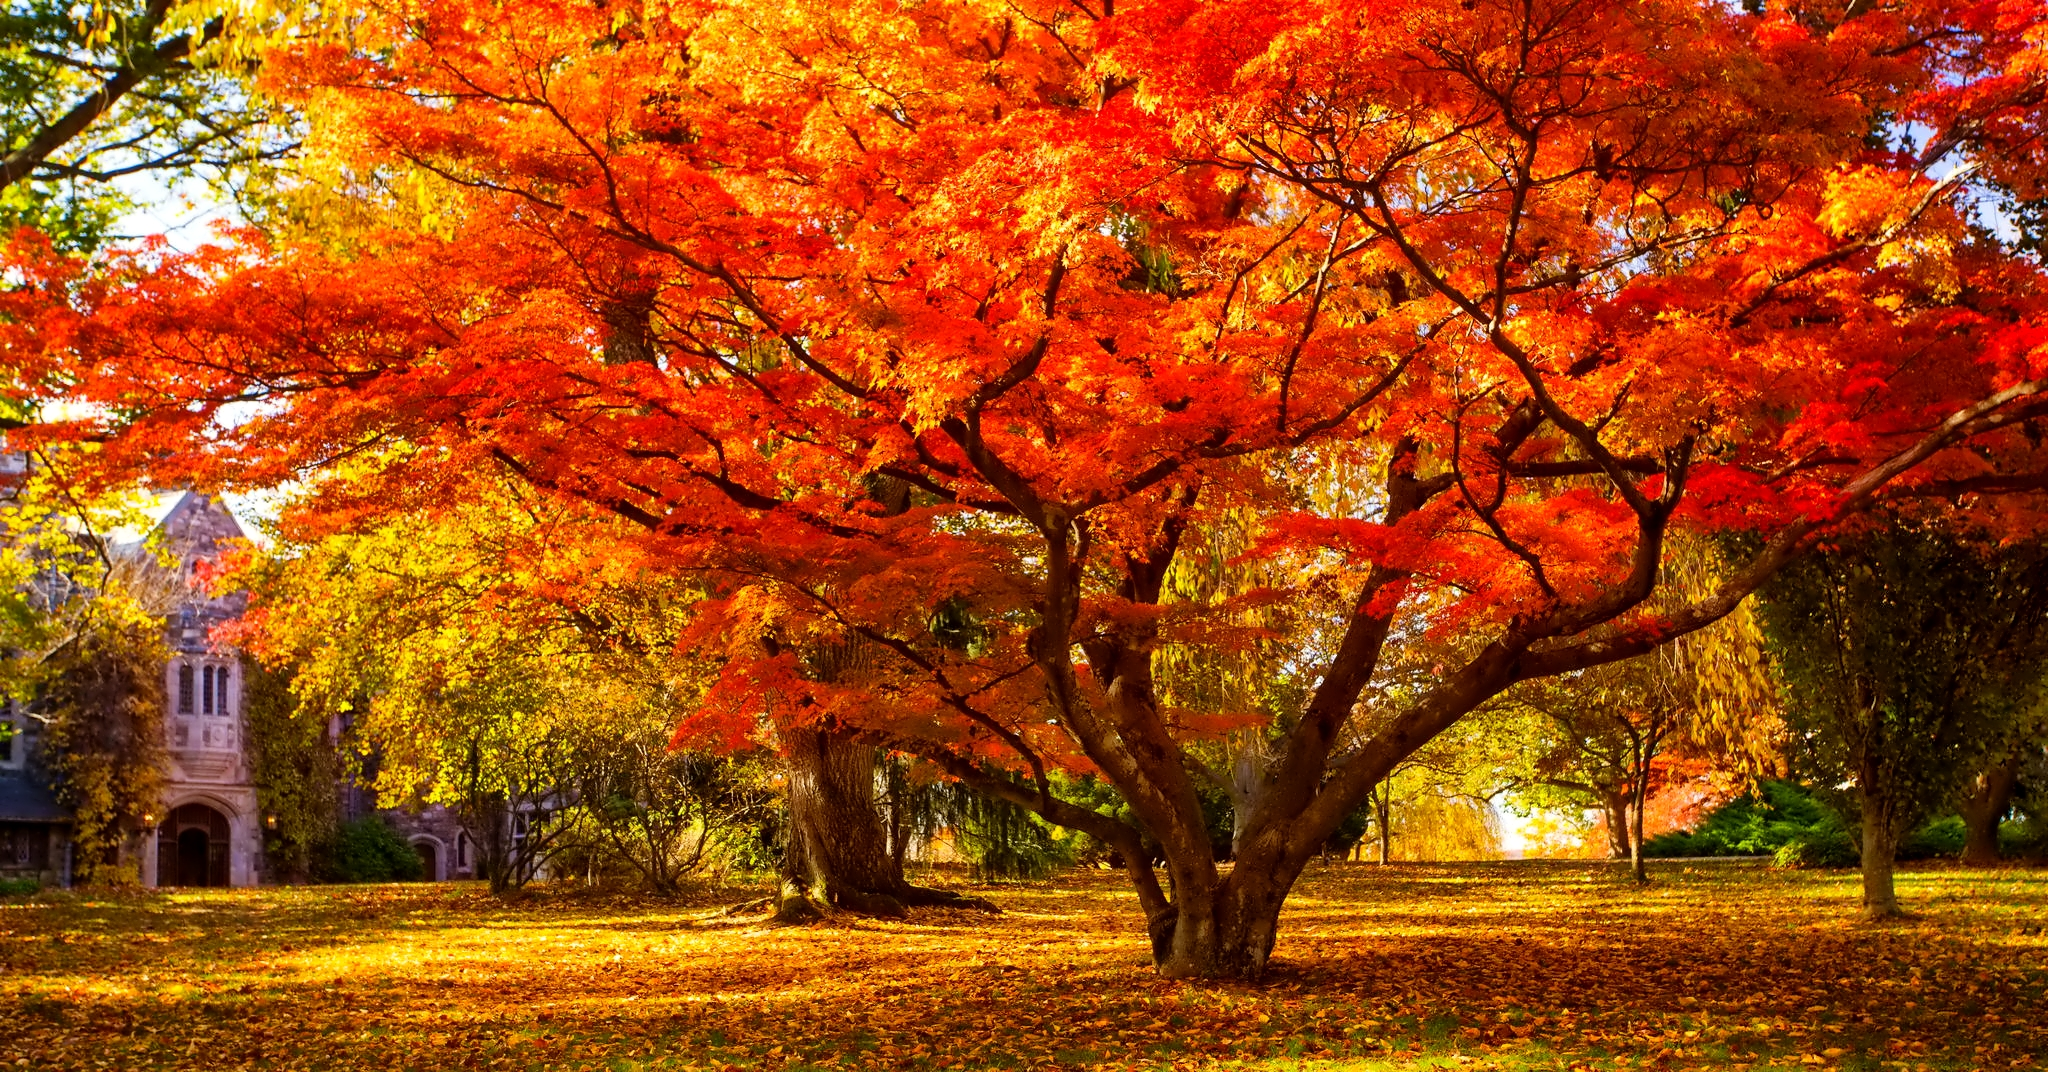 Falling Water Wallpaper 1080p Red Leaves Tree Wallpapers High Quality Download Free